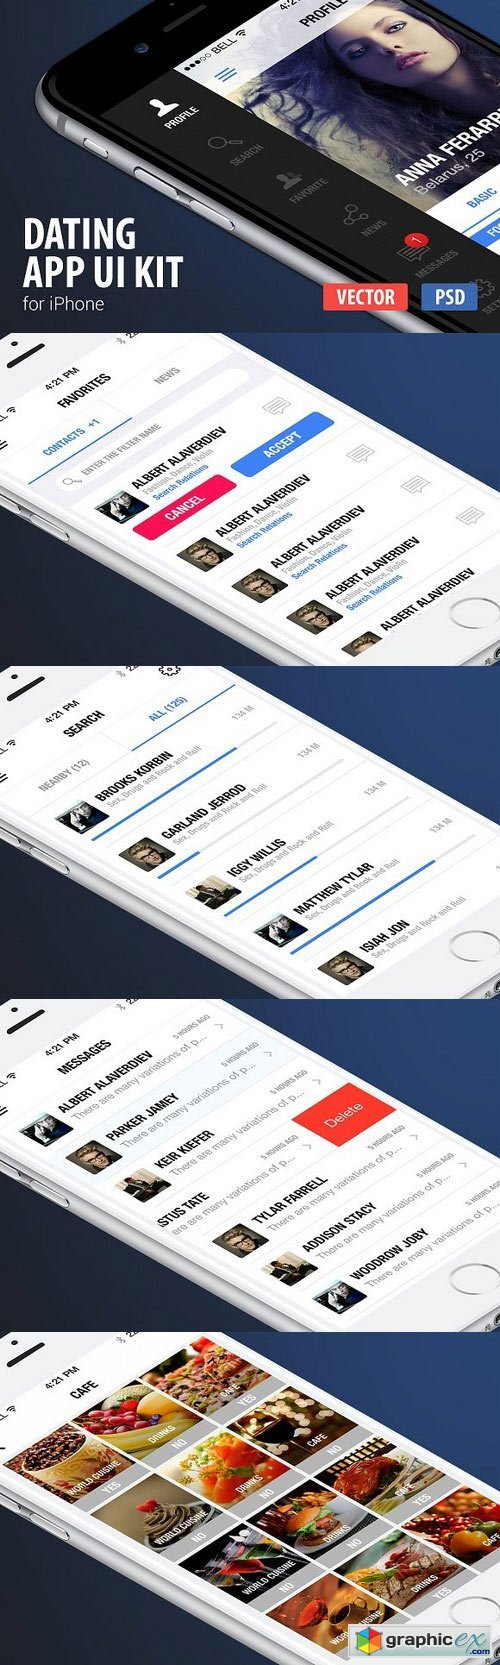 Dating App Ui Kit for iPhone